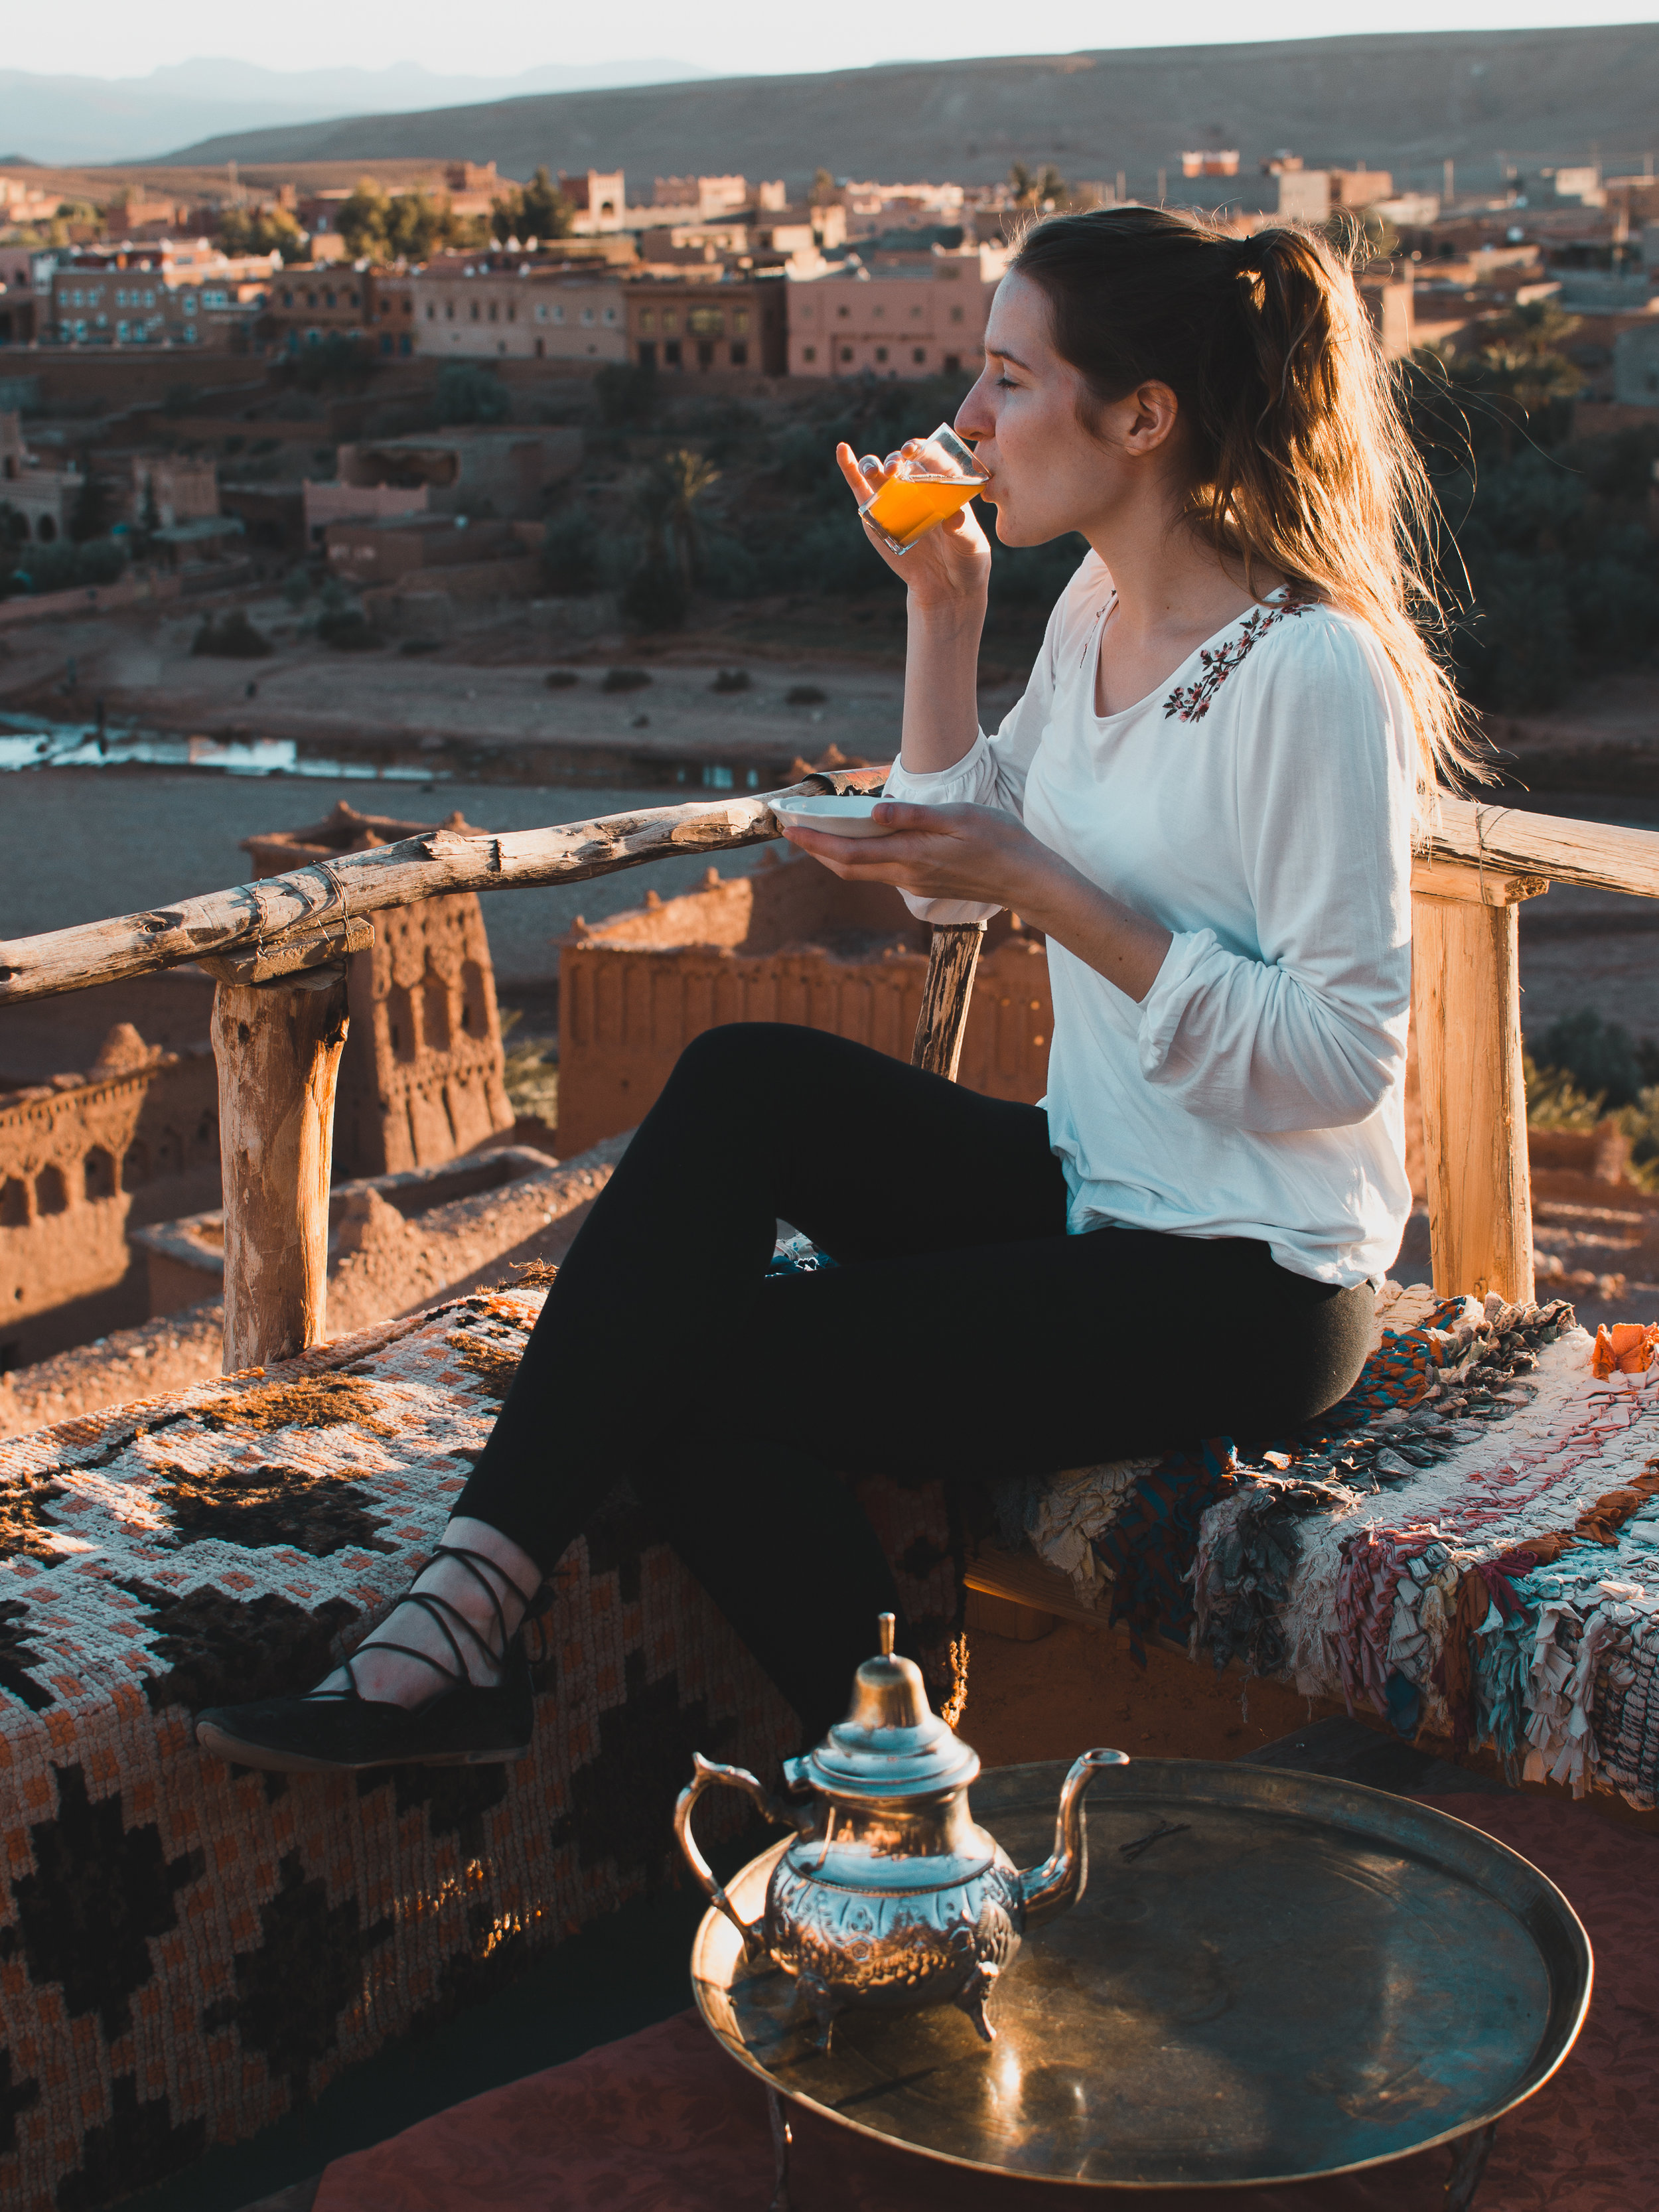 The afternoons are a little warmer in Morocco during the winter